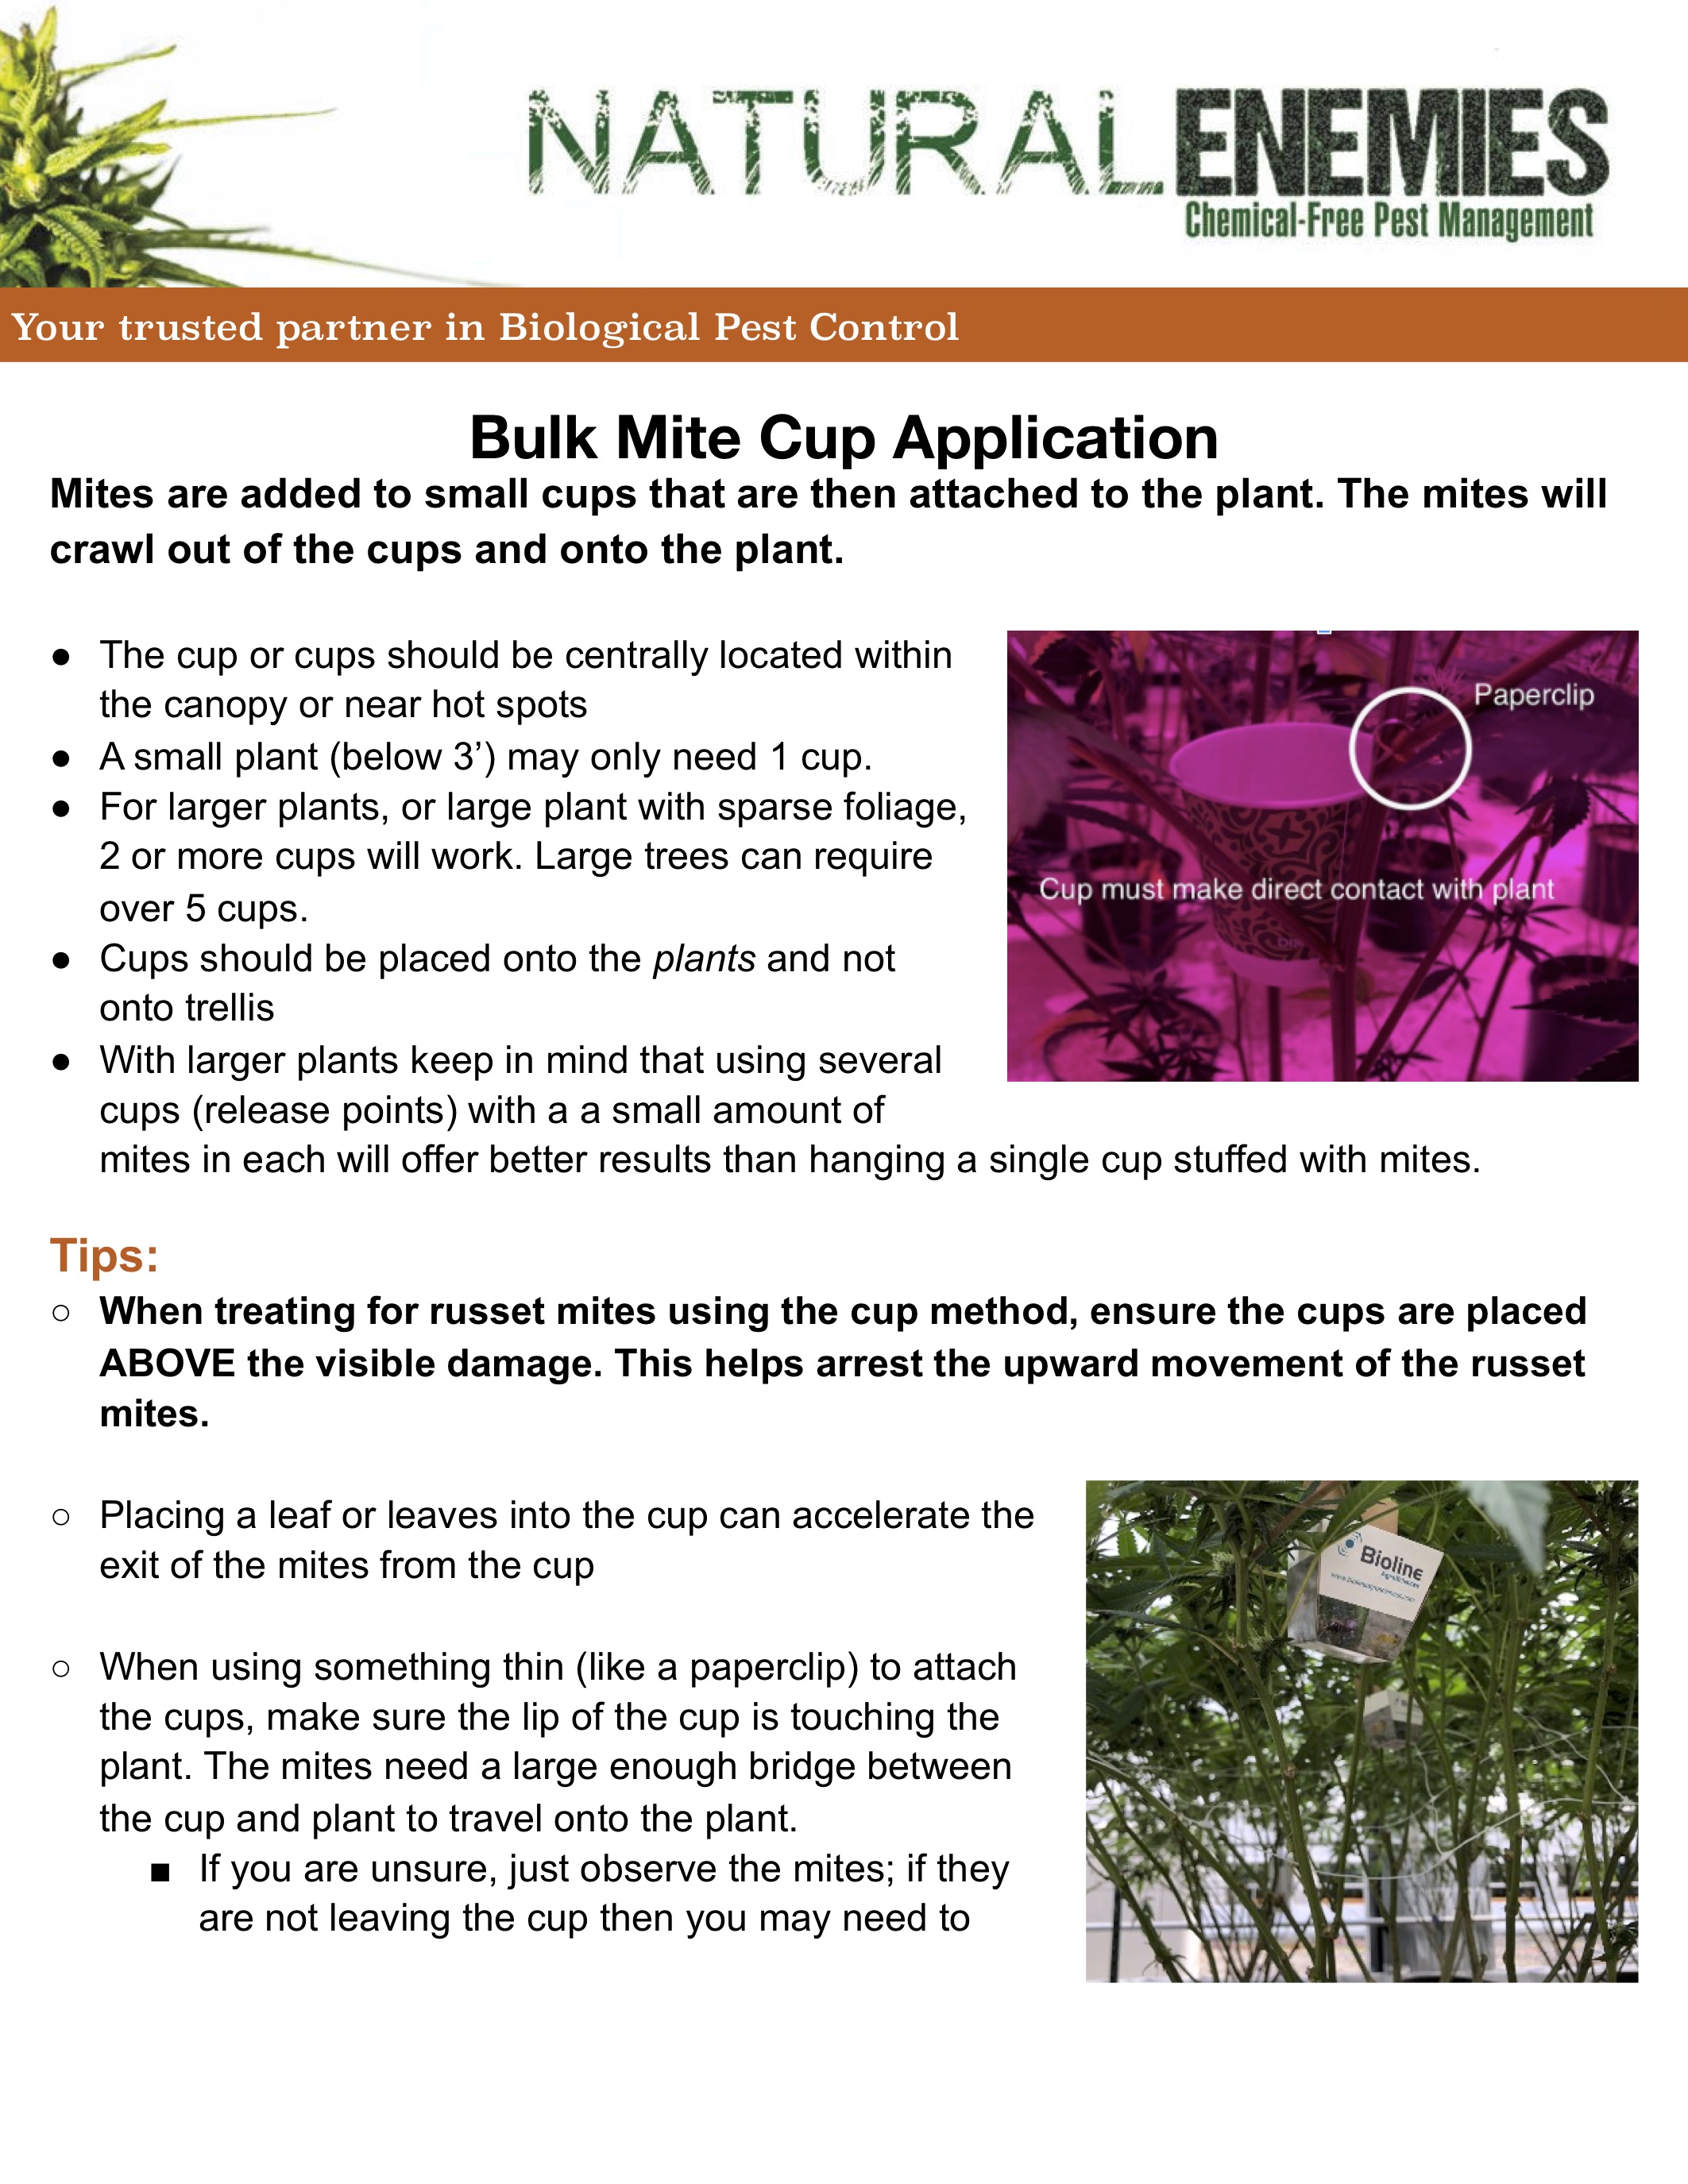 application-directions-for-mites-cup-applicaitons.jpg